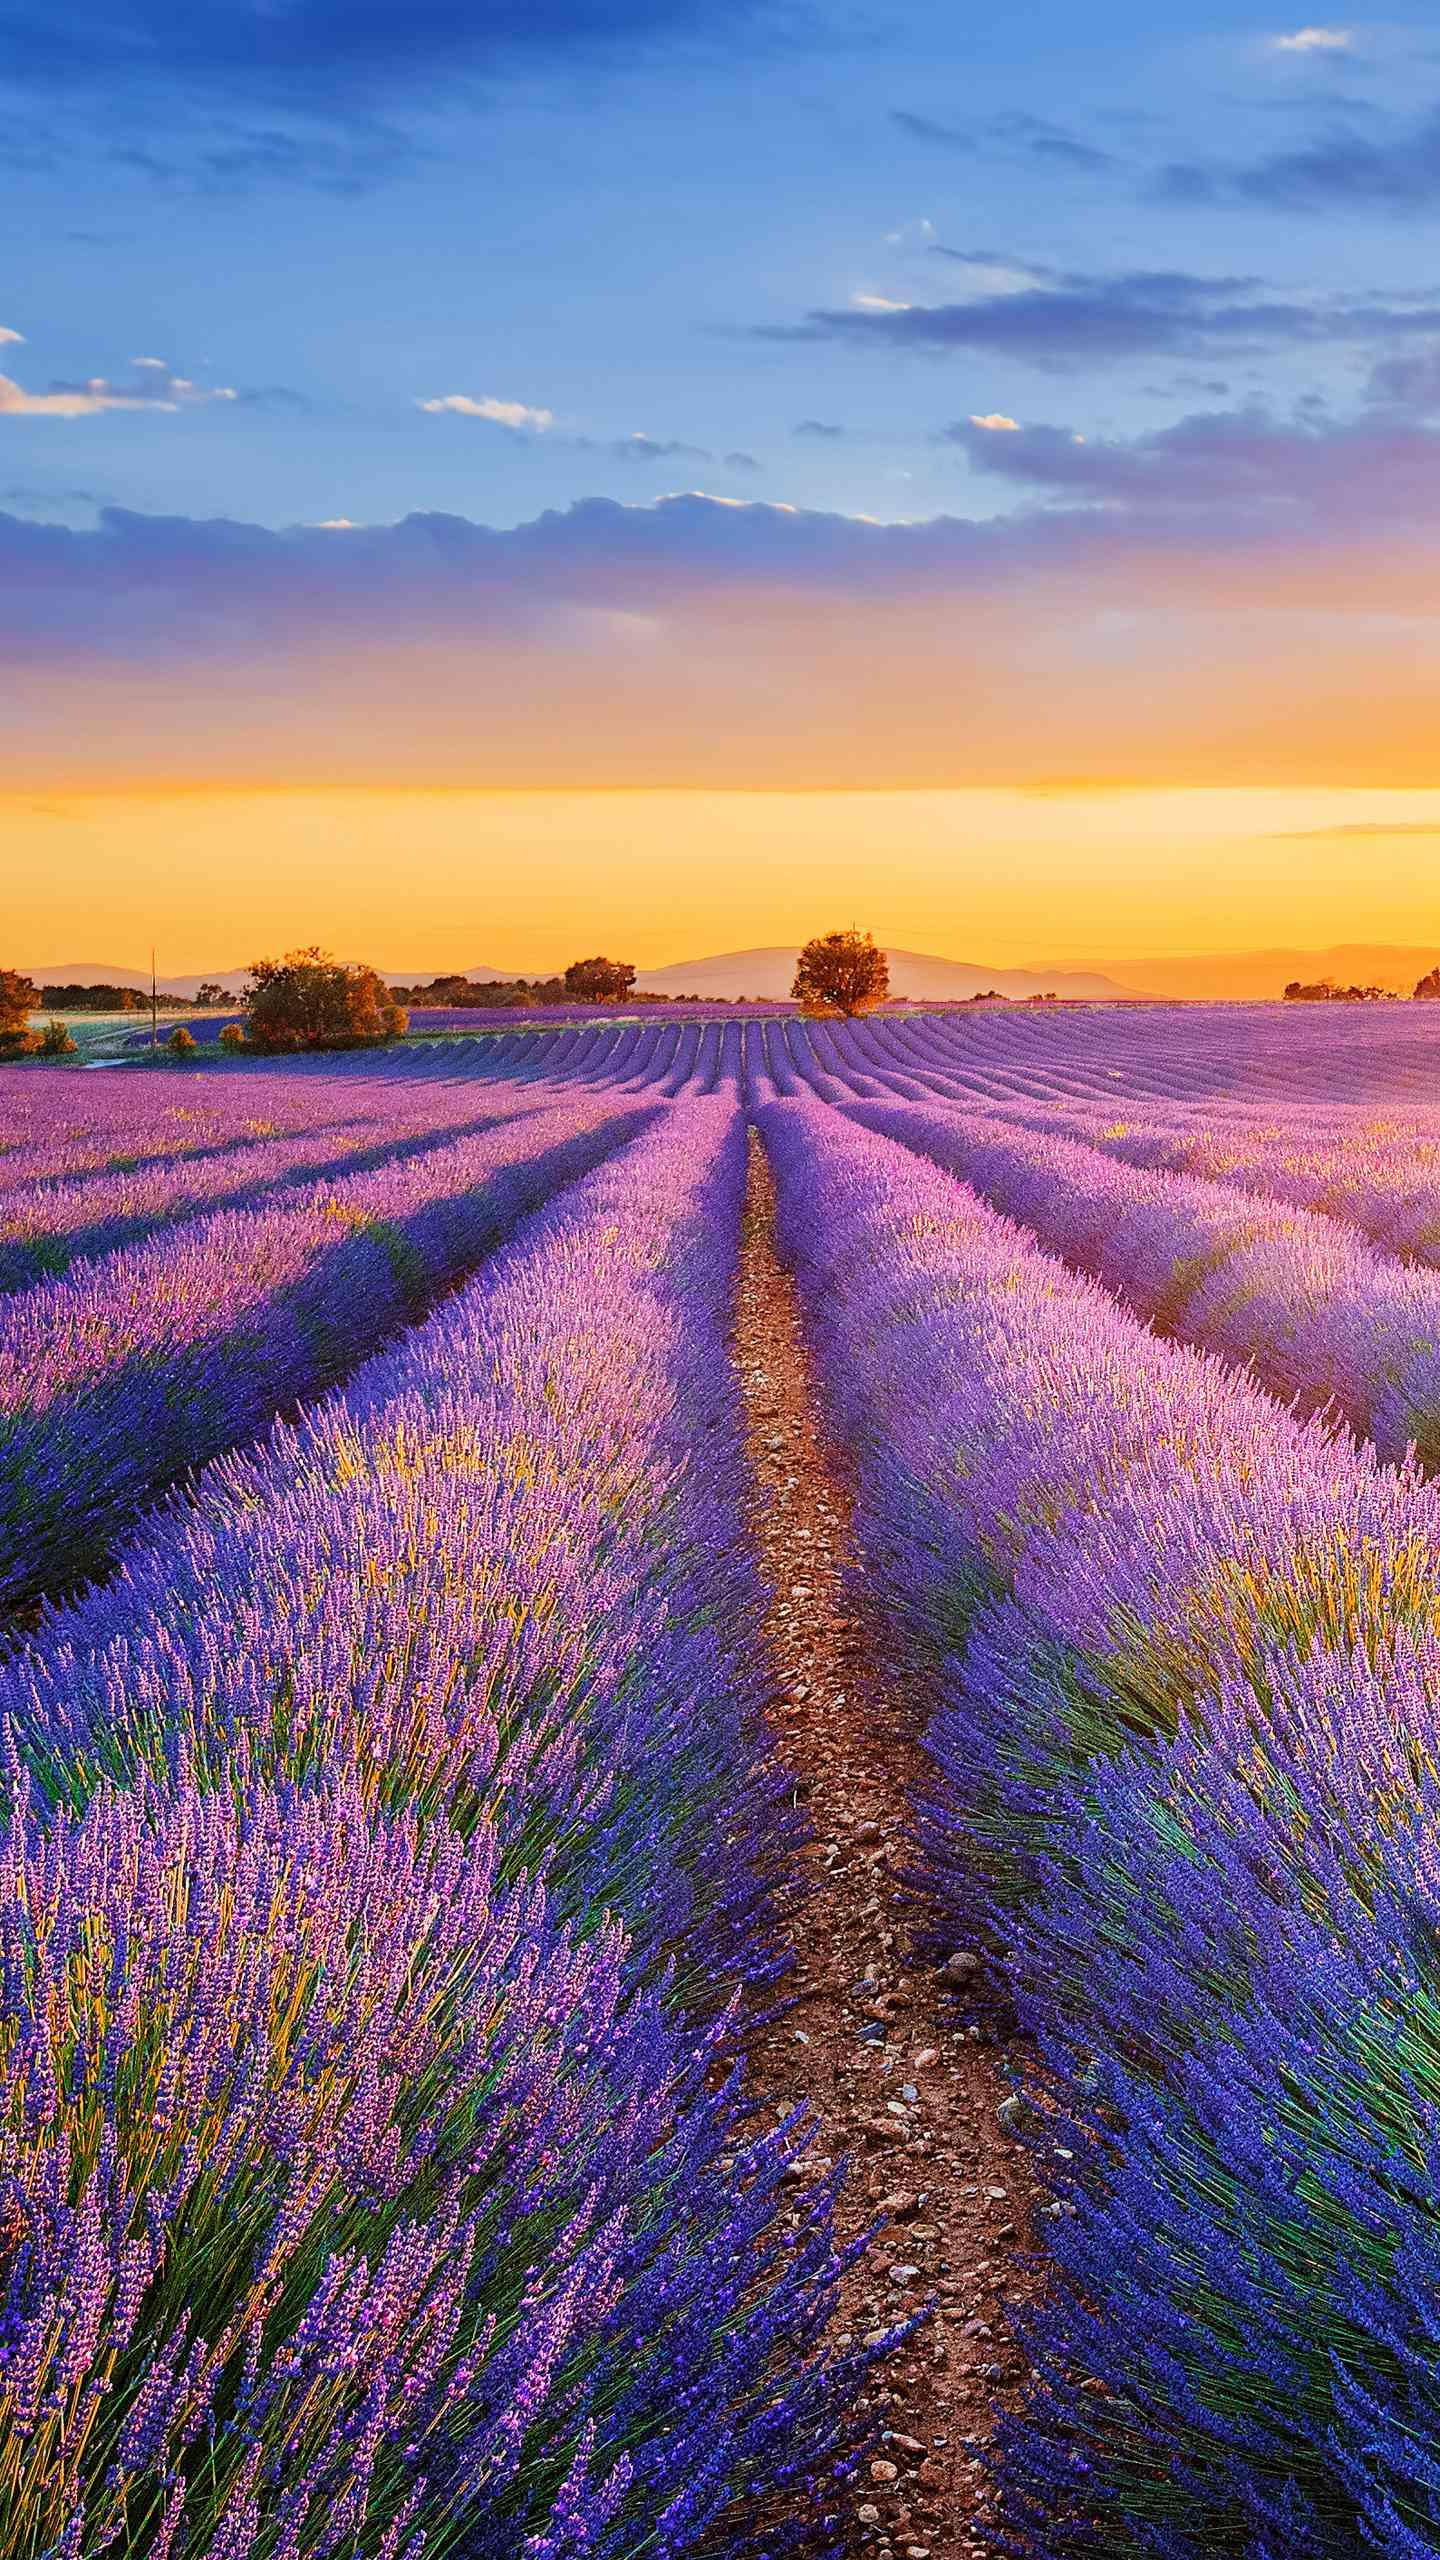 Lavender cultivation is complicated. How complicated is the planting work behind the beautiful lavender?